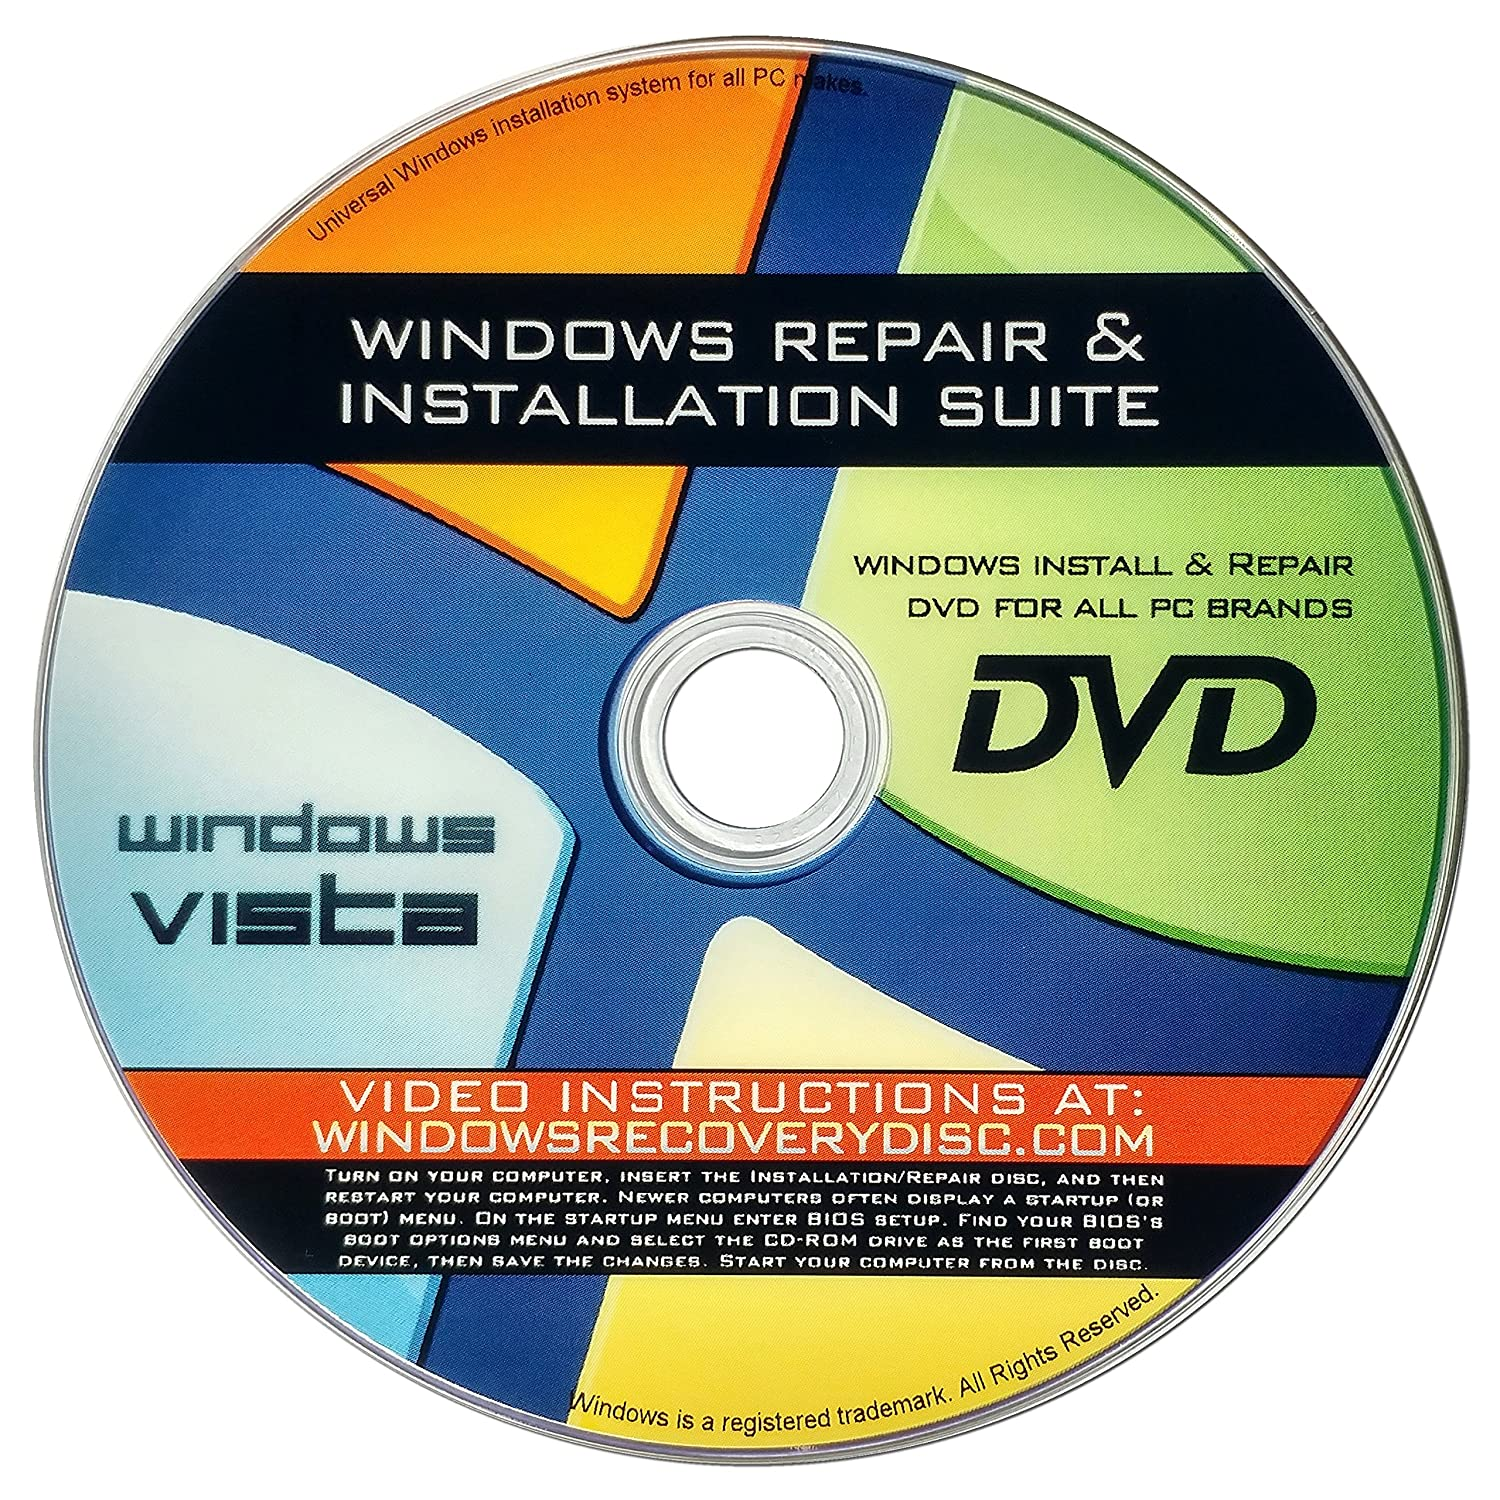 Windows Vista Re-Install, Reinstallation, Repair, Recovery For All 32 Bit,  64 Bit PCs including HP, Lenovo, Dell, Toshiba, Sony, Asus, Acer, Compaq,